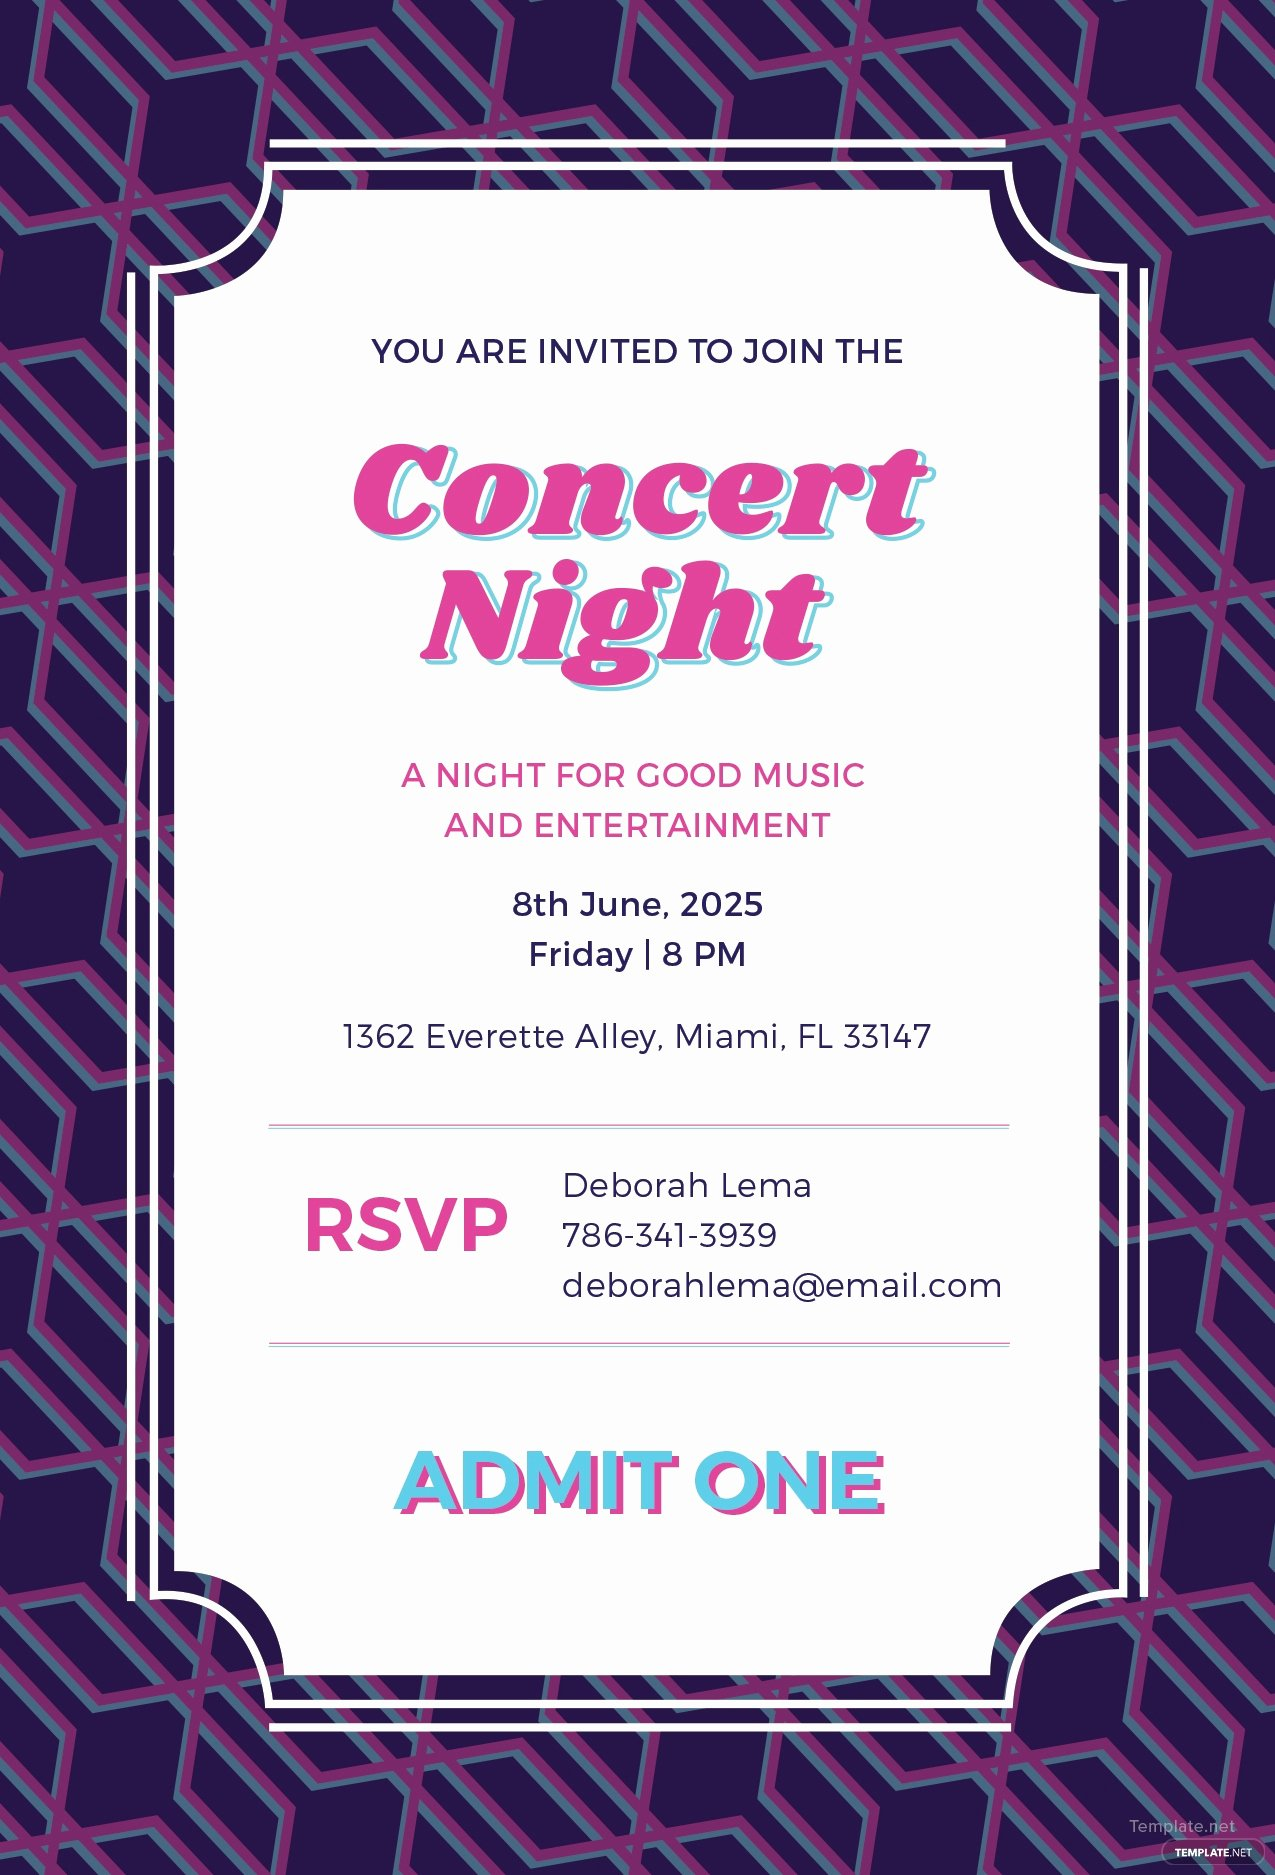 Concert Tickets Template Free New Free Concert Ticket Invitation Template In Adobe Shop